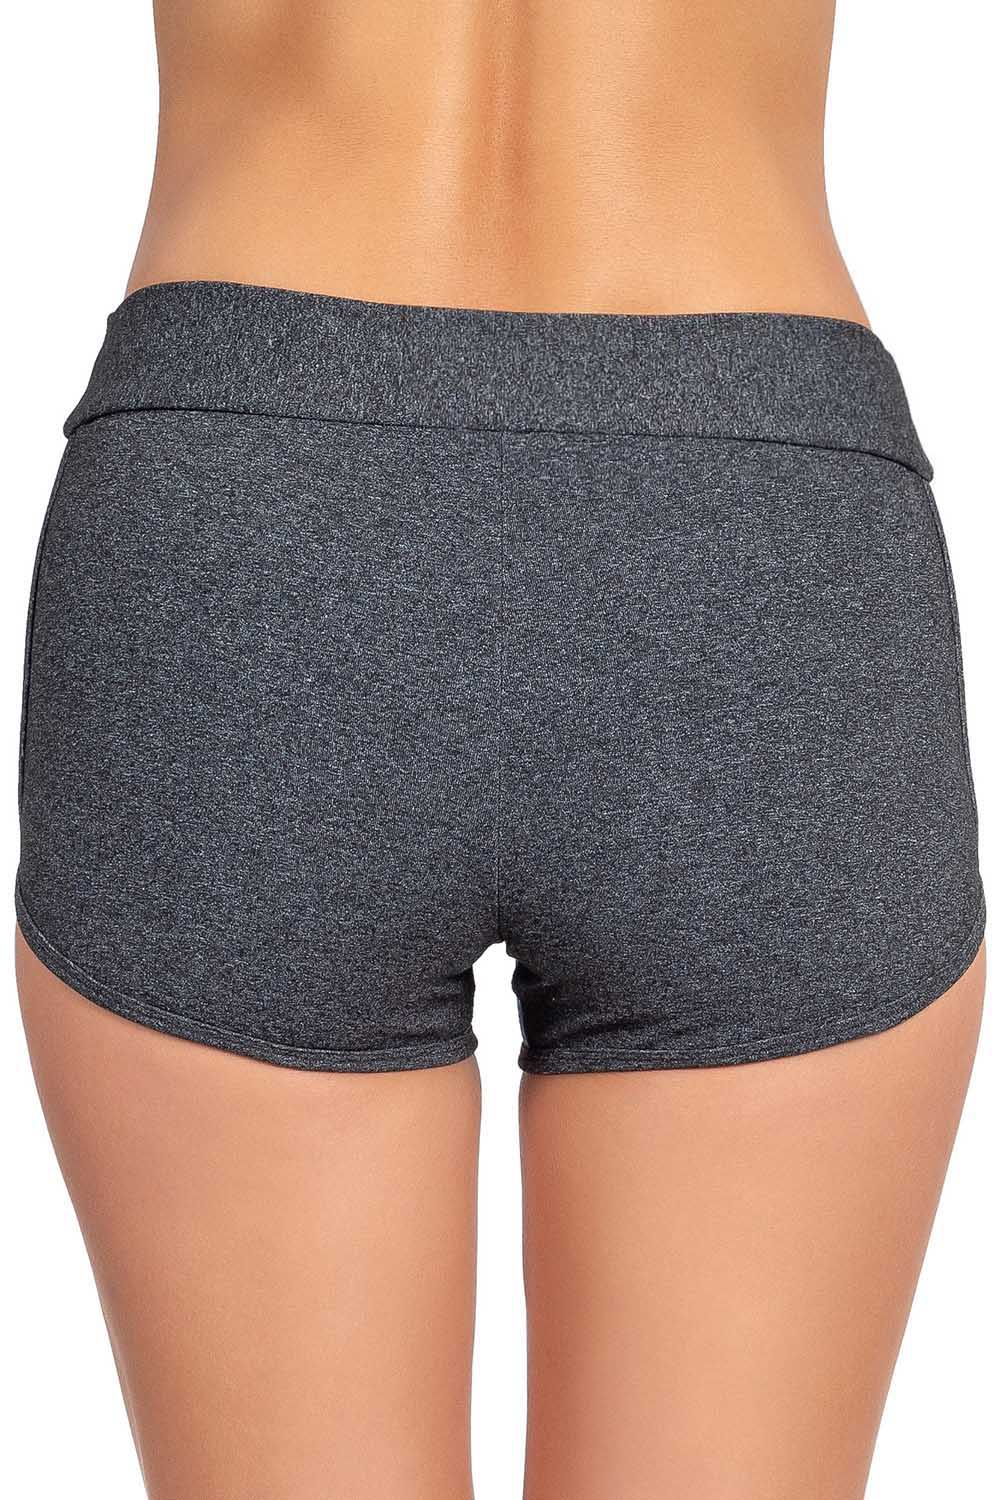 Daily Exercise Shorts